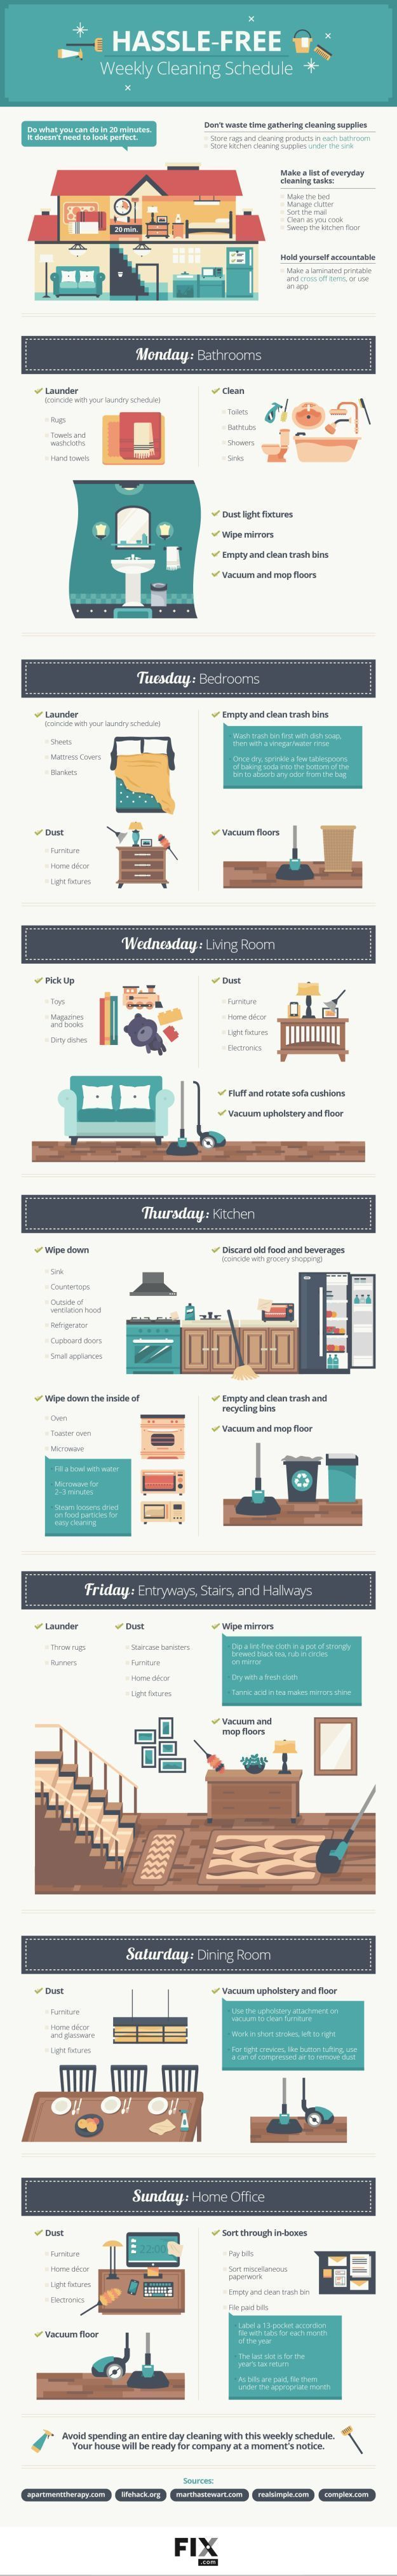 Check out Weekly Cleaning Schedule | Homesteading Tips at https://homesteading.com/weekly-cleaning-schedule-infographic-homesteading-tips/